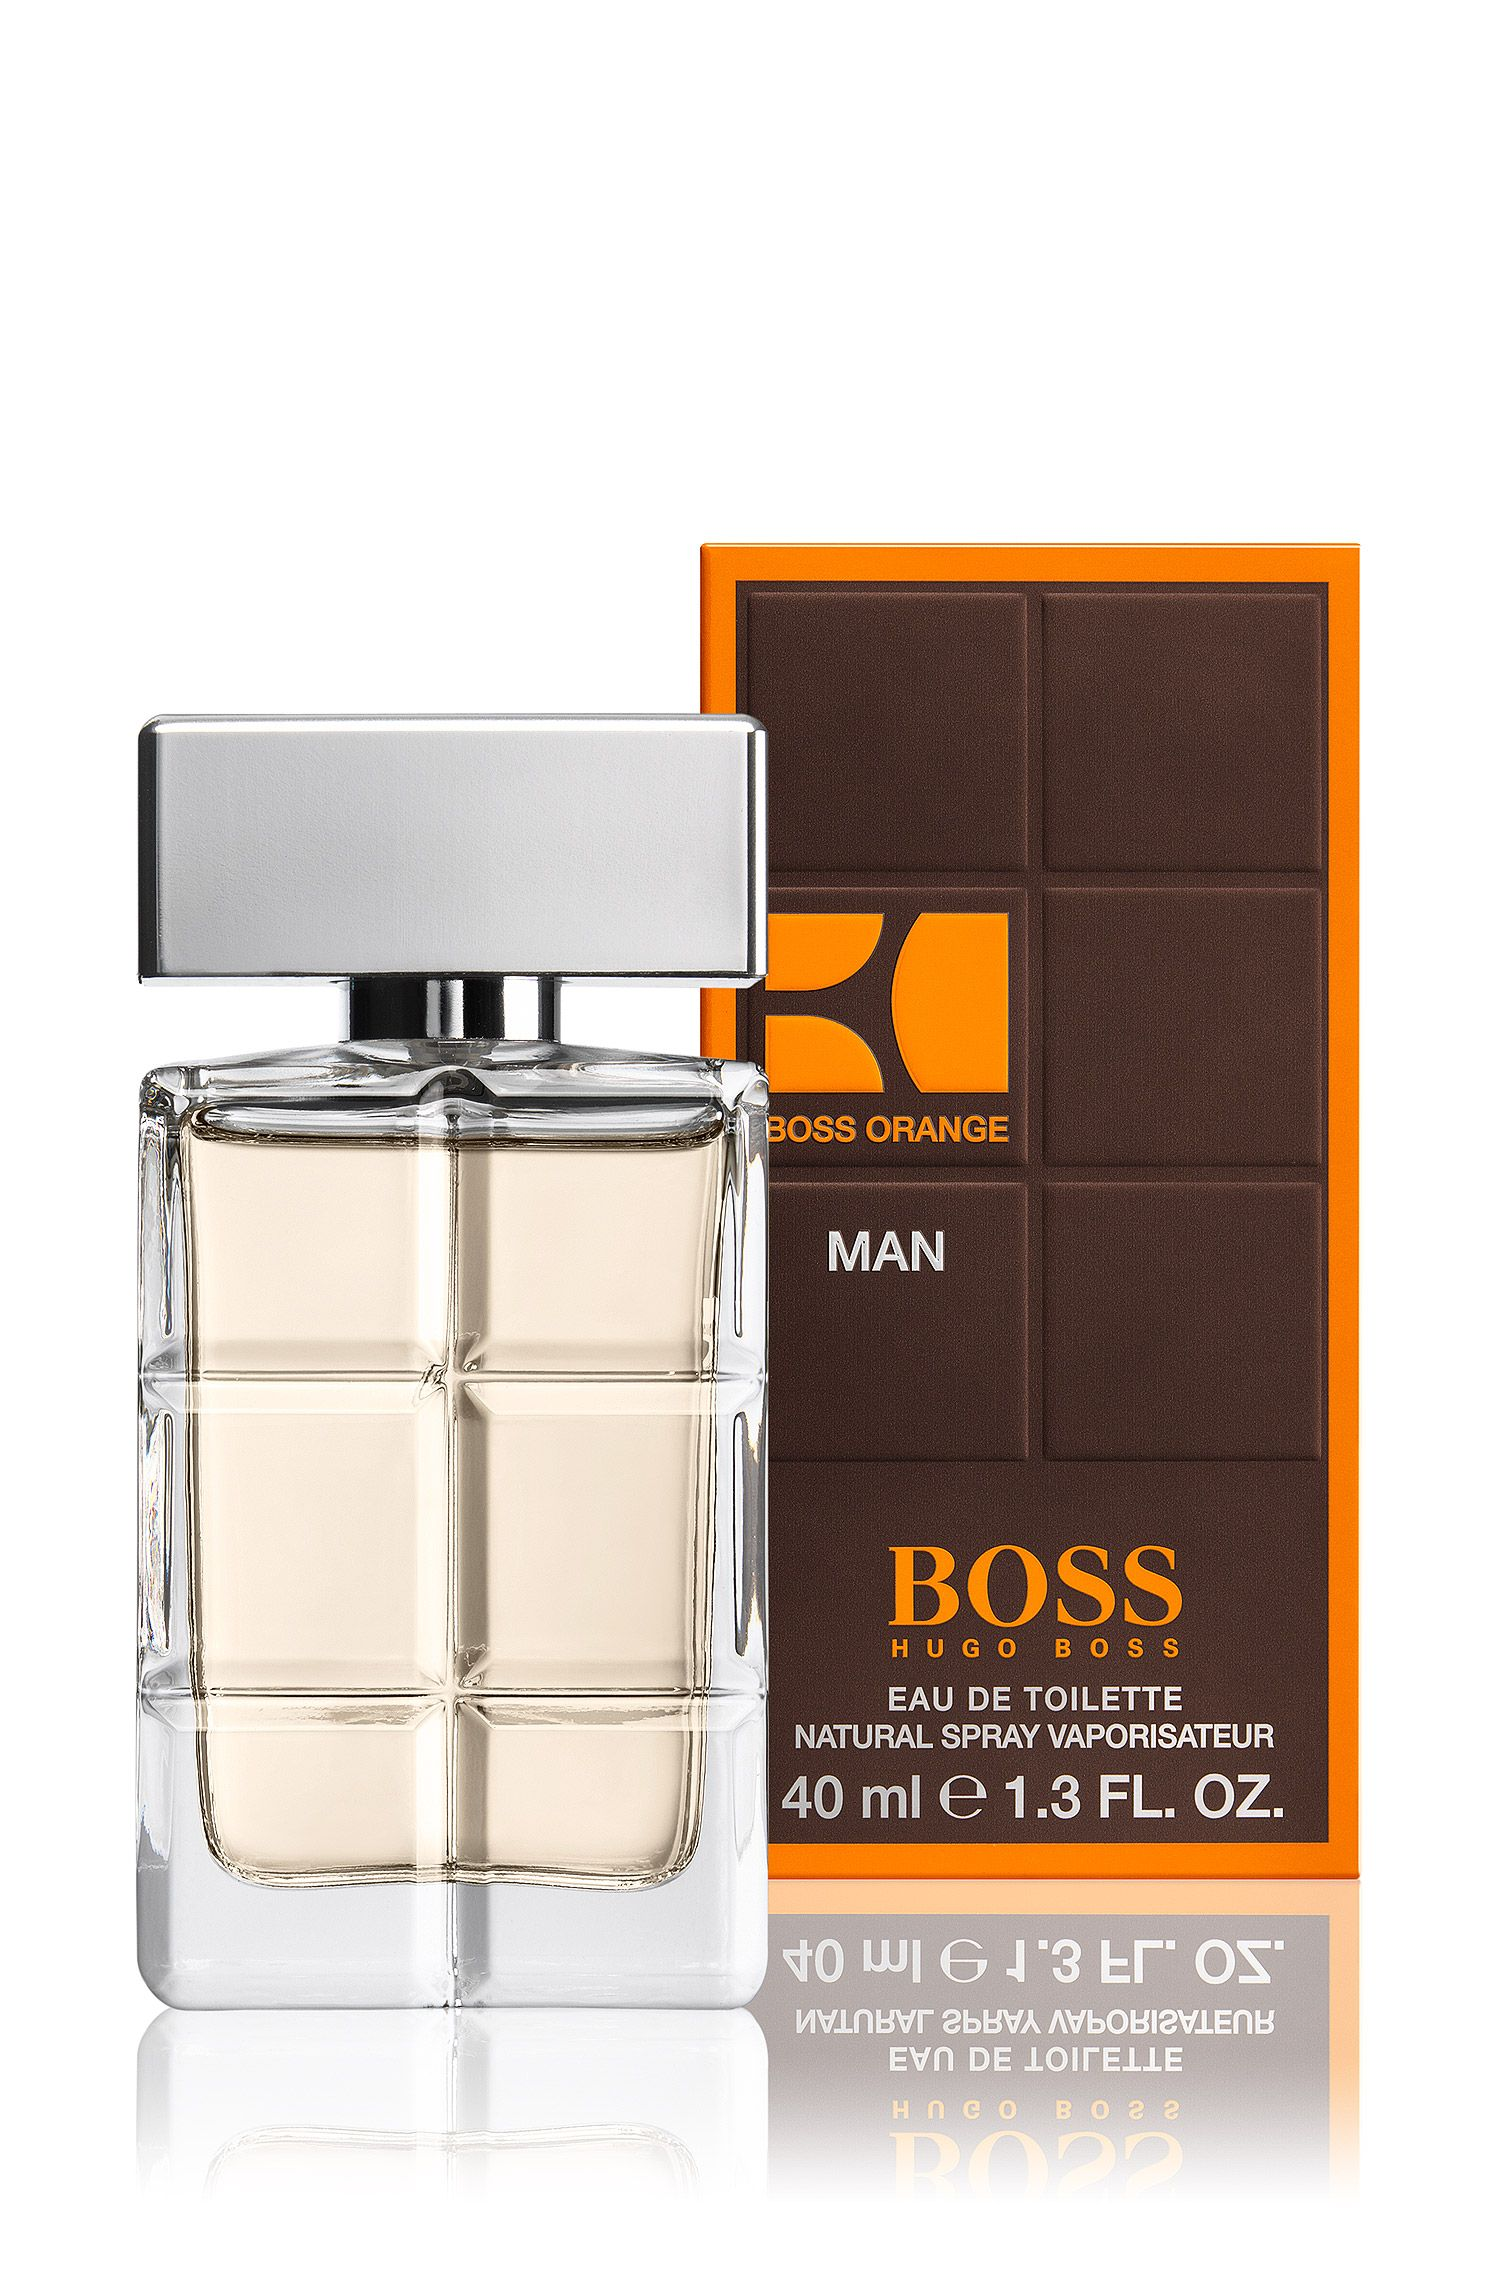 'BOSS Orange Man' Eau de Toilette 40 ml